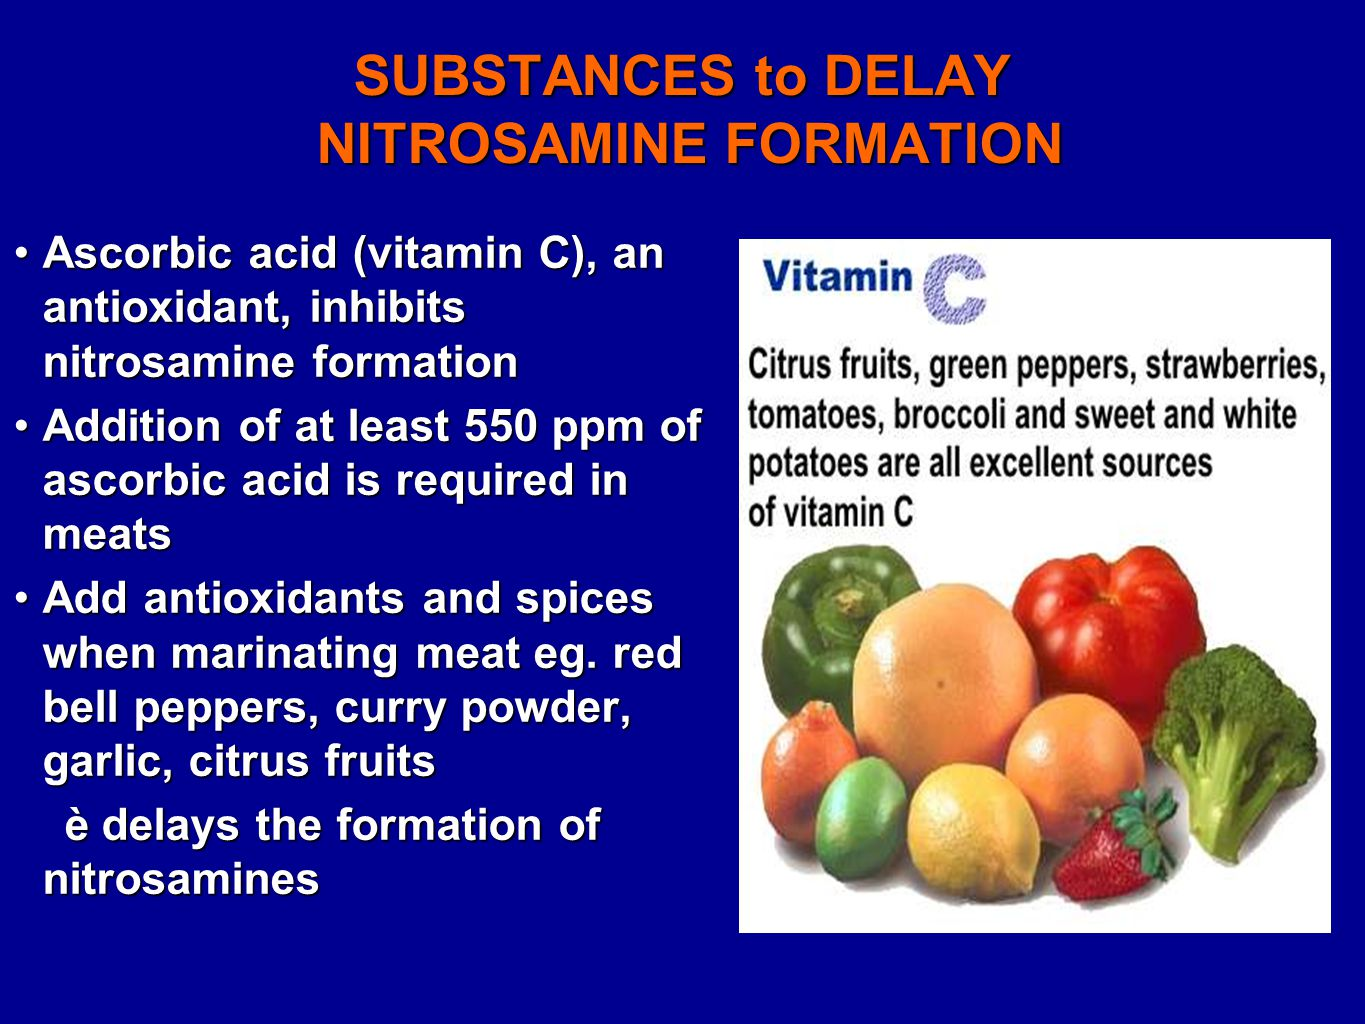 SUBSTANCES to DELAY NITROSAMINE FORMATION Ascorbic acid (vitamin C), an antioxidant, inhibits nitrosamine formationAscorbic acid (vitamin C), an antioxidant, inhibits nitrosamine formation Addition of at least 550 ppm of ascorbic acid is required in meatsAddition of at least 550 ppm of ascorbic acid is required in meats Add antioxidants and spices when marinating meat eg.